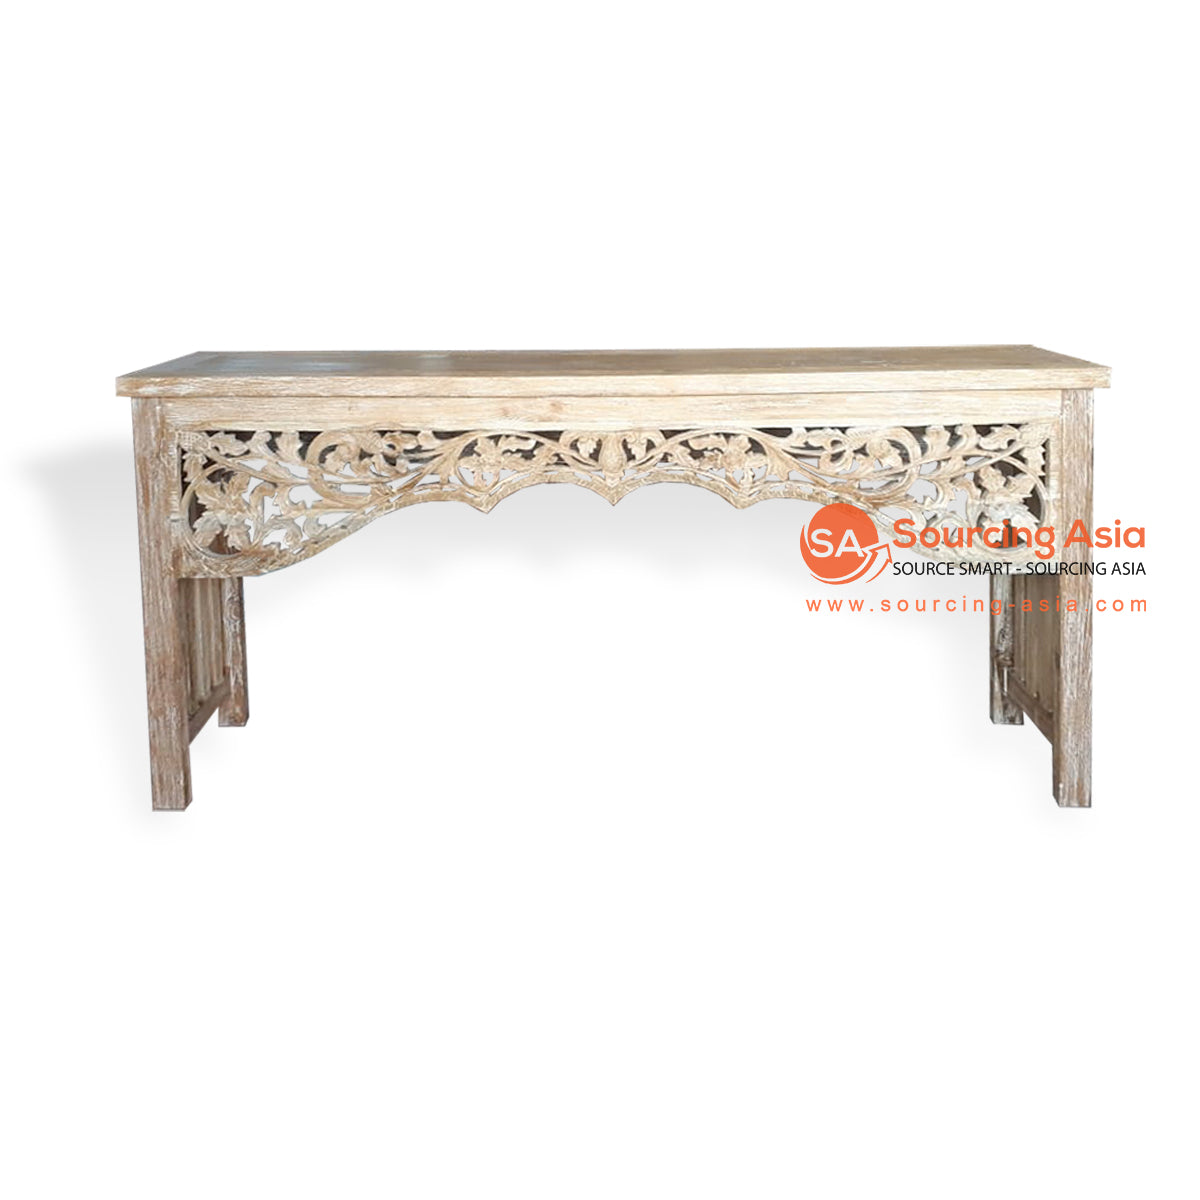 EVA071-1 CARVED RECYCLED WOOD CONSOLE